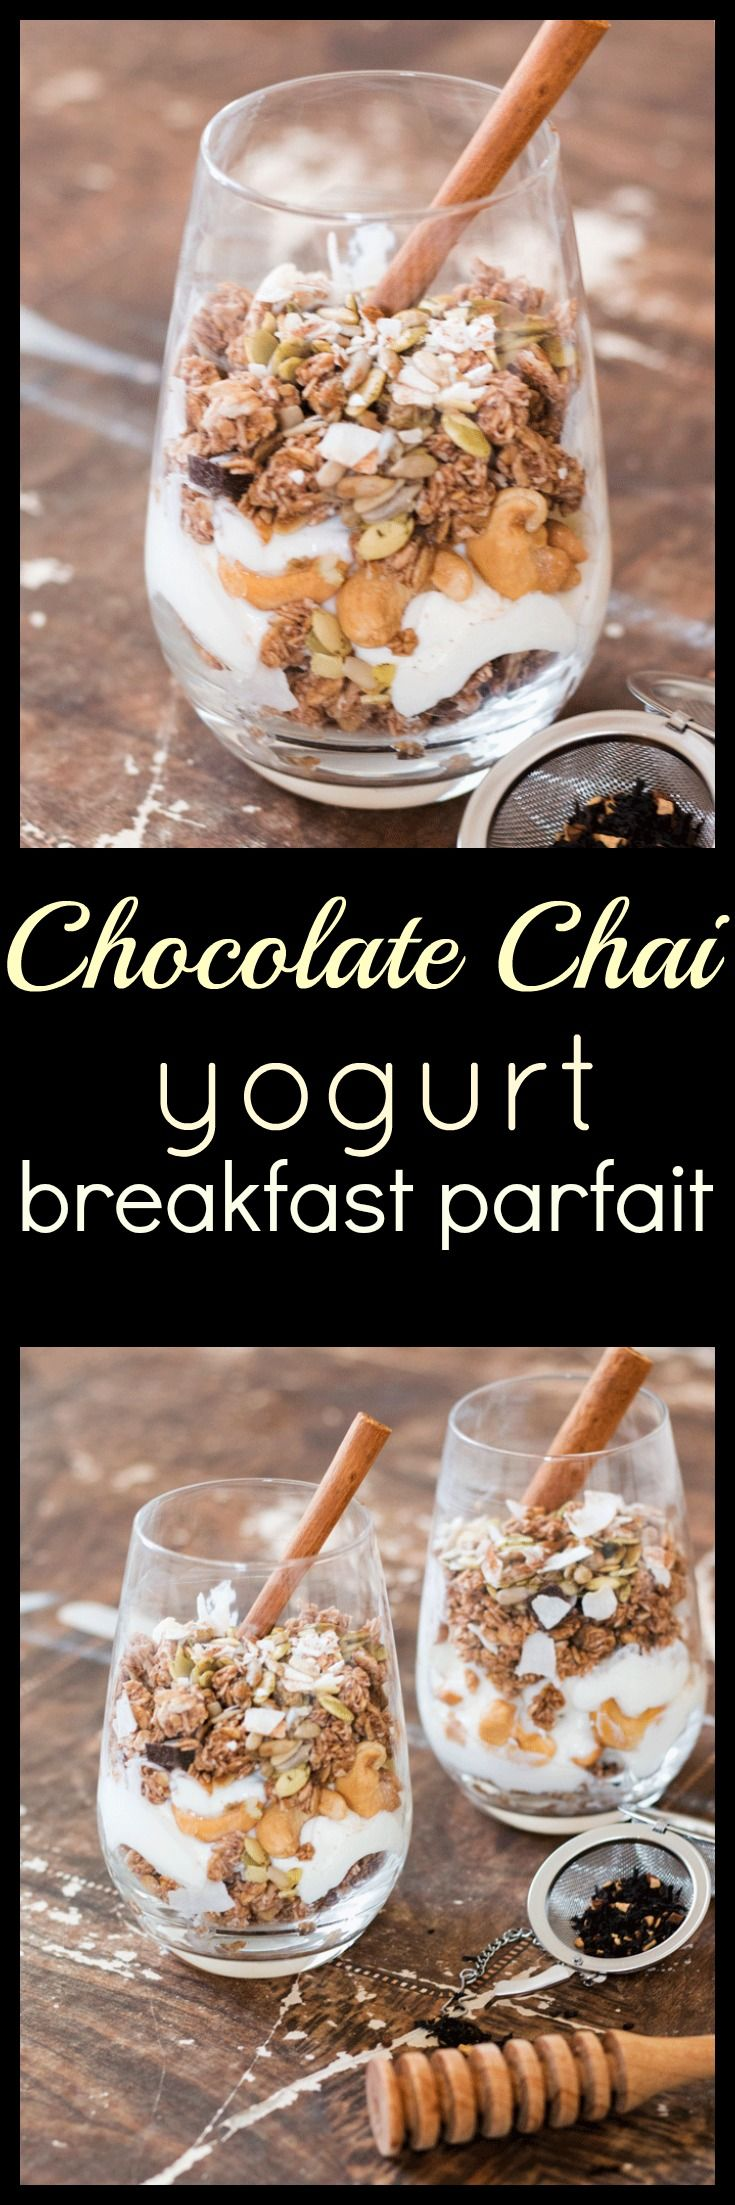 Chai infused yogurt and local raw honey combines with crunchy granola, nuts and seeds to bring you this delightful chocolate chai yogurt breakfast parfait via @wholefoodbellies